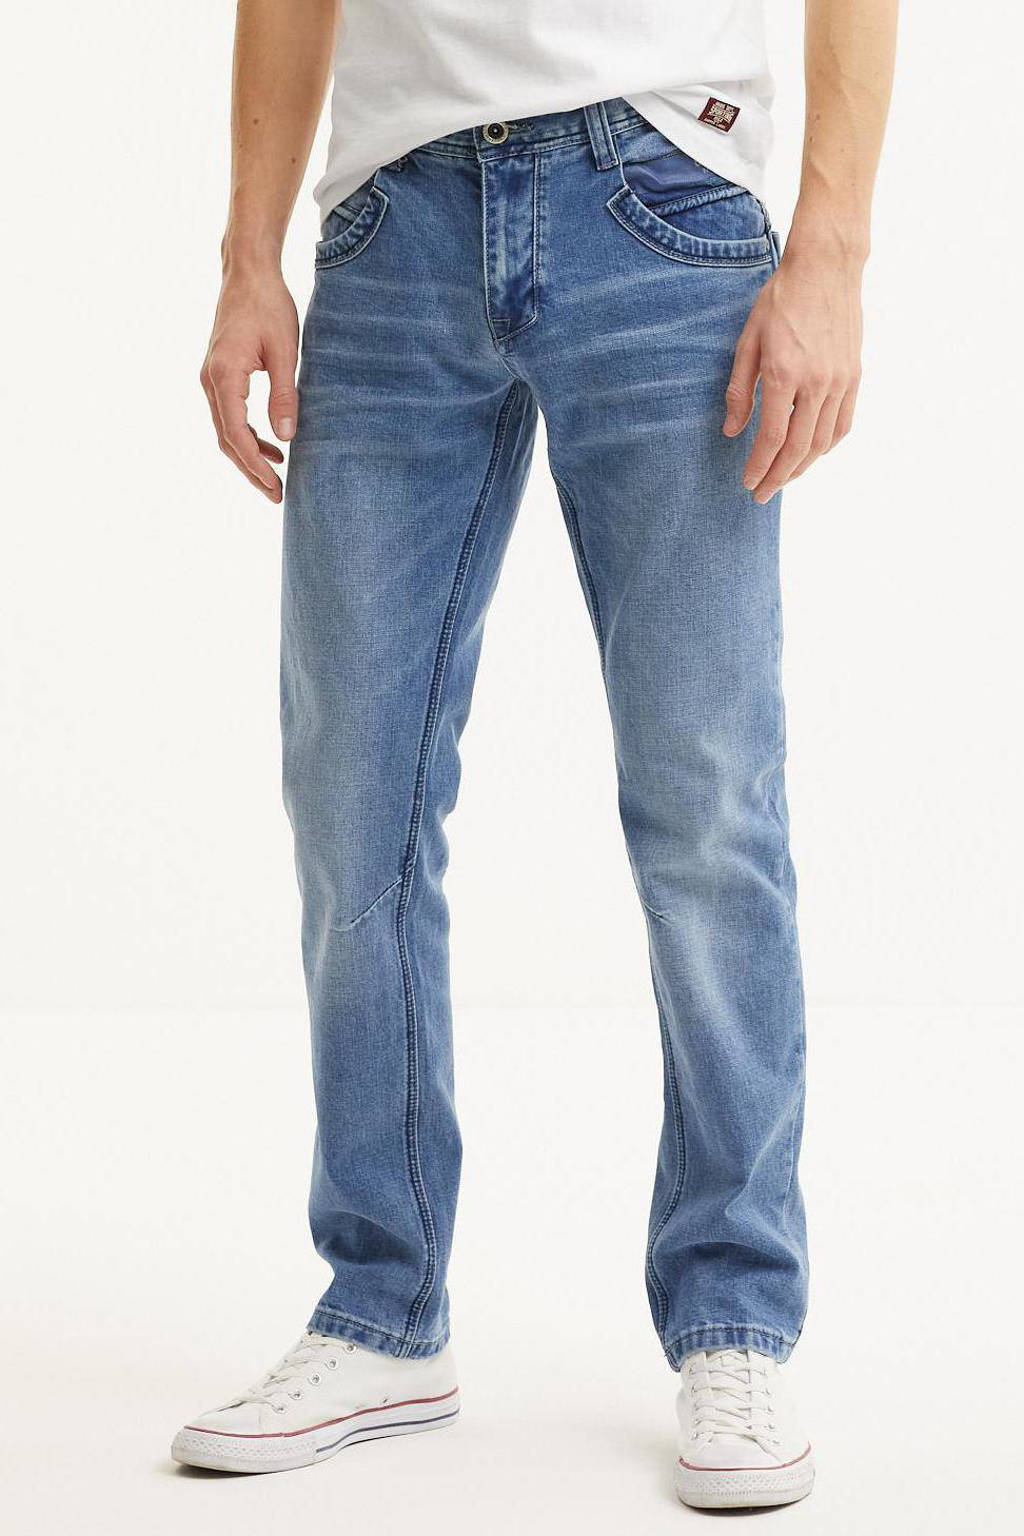 Cars regular fit jeans Blackstar stone bleached, Stone bleached